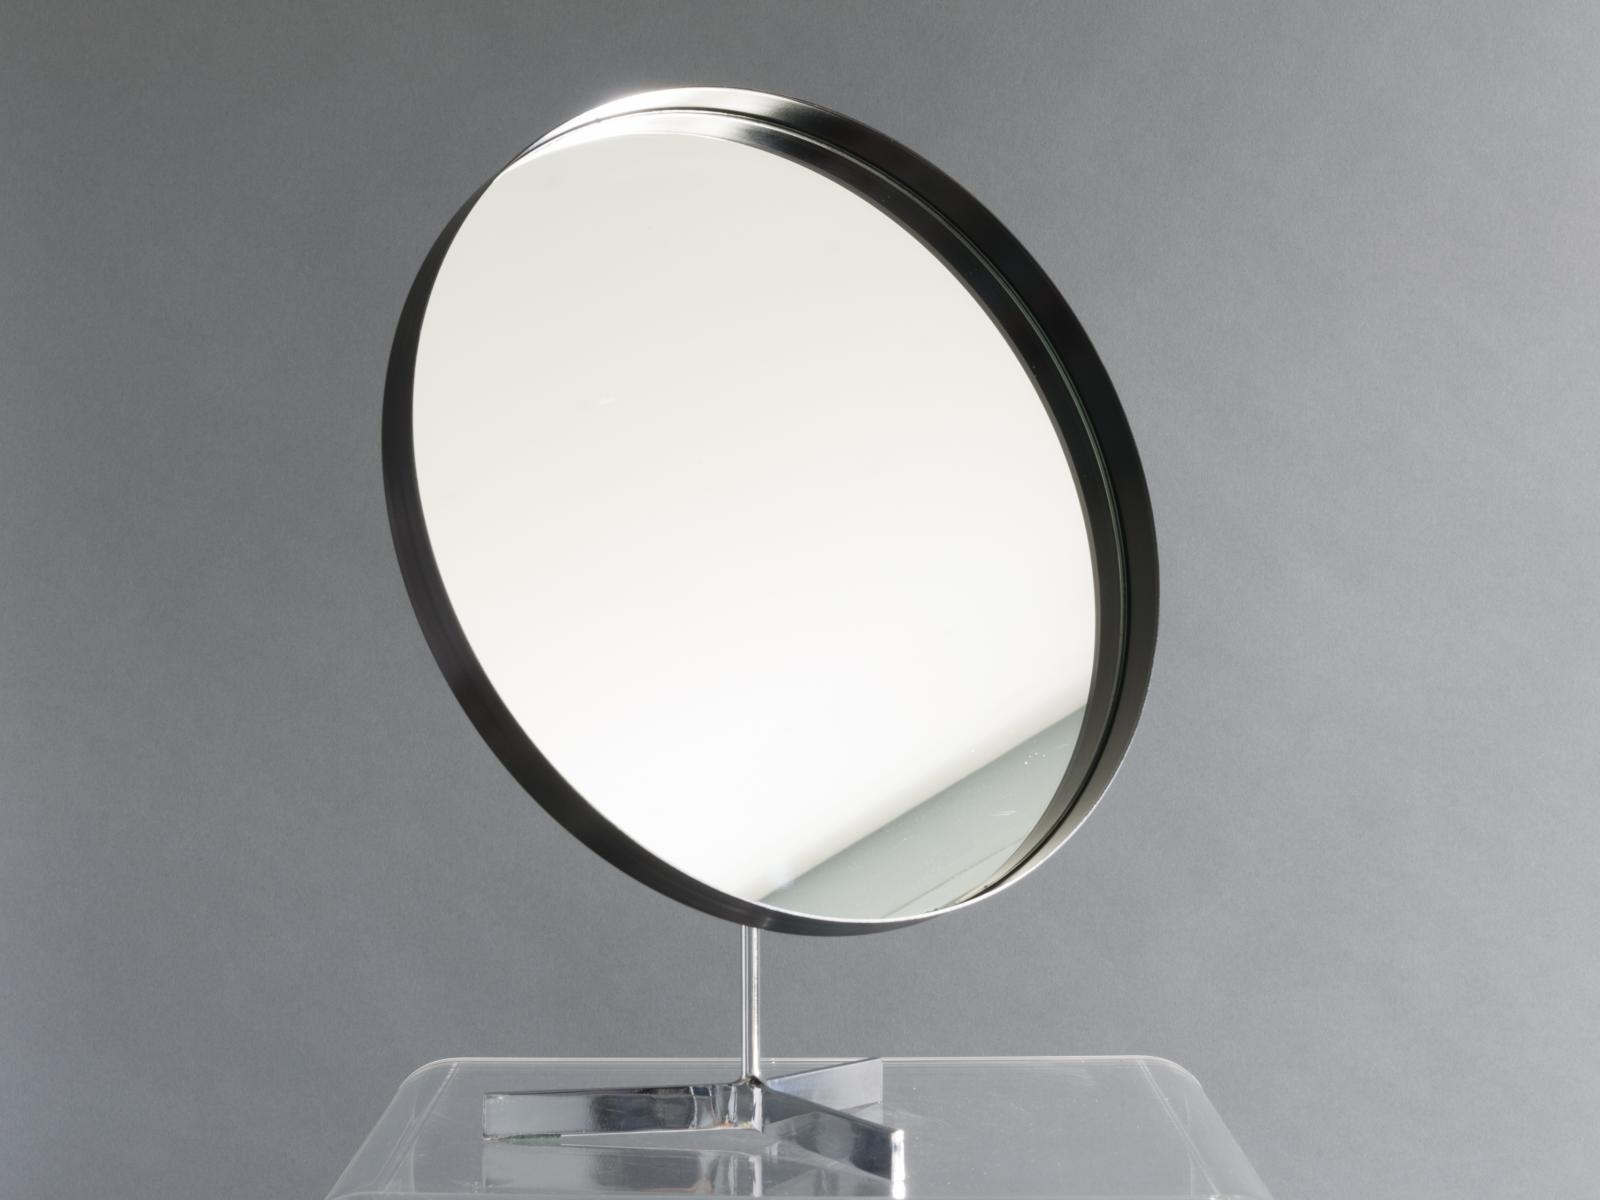 British Large Black And Chrome Tripod Mirror From Durlston Designs With Regard To Large Black Mirrors For Sale (Image 7 of 15)